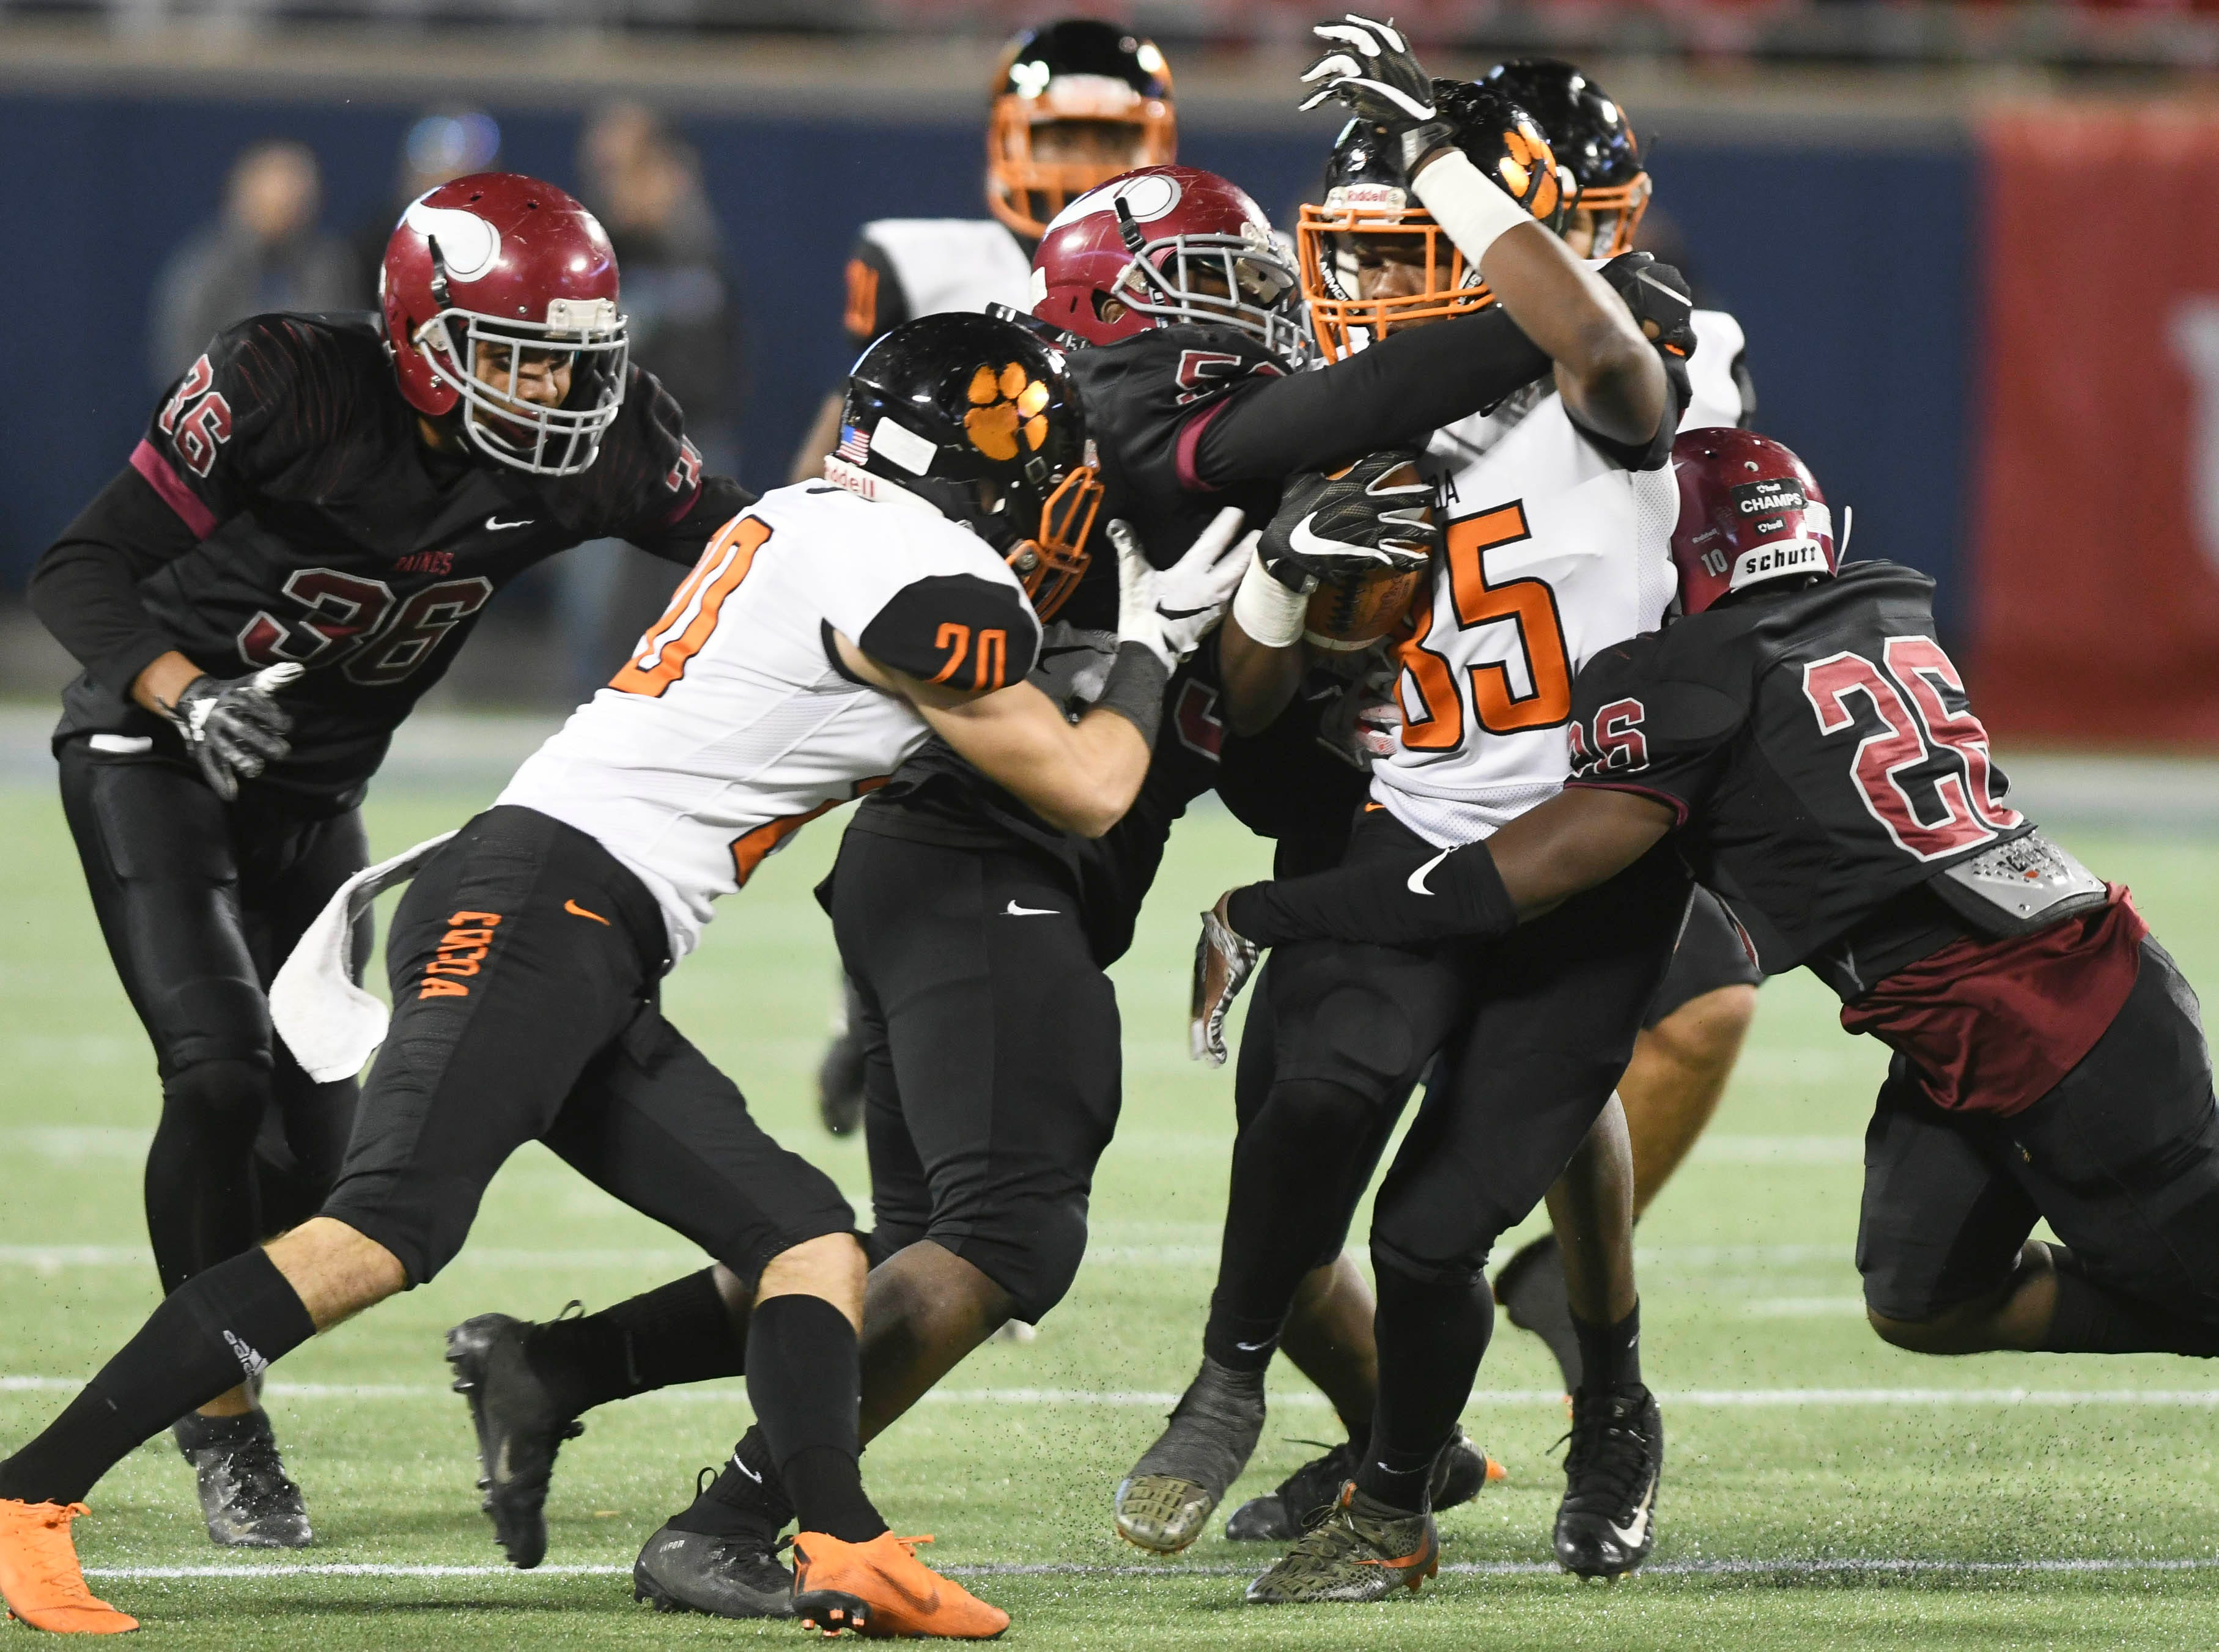 Cocoa's Demarquez Henley of Cocoa (85) struggles for yardage during Thursday's Class 4A football state championship. On the tackle for Raines is Adrien Tarver (26) Kyree Hammond (36) and Reginald Harden (46).